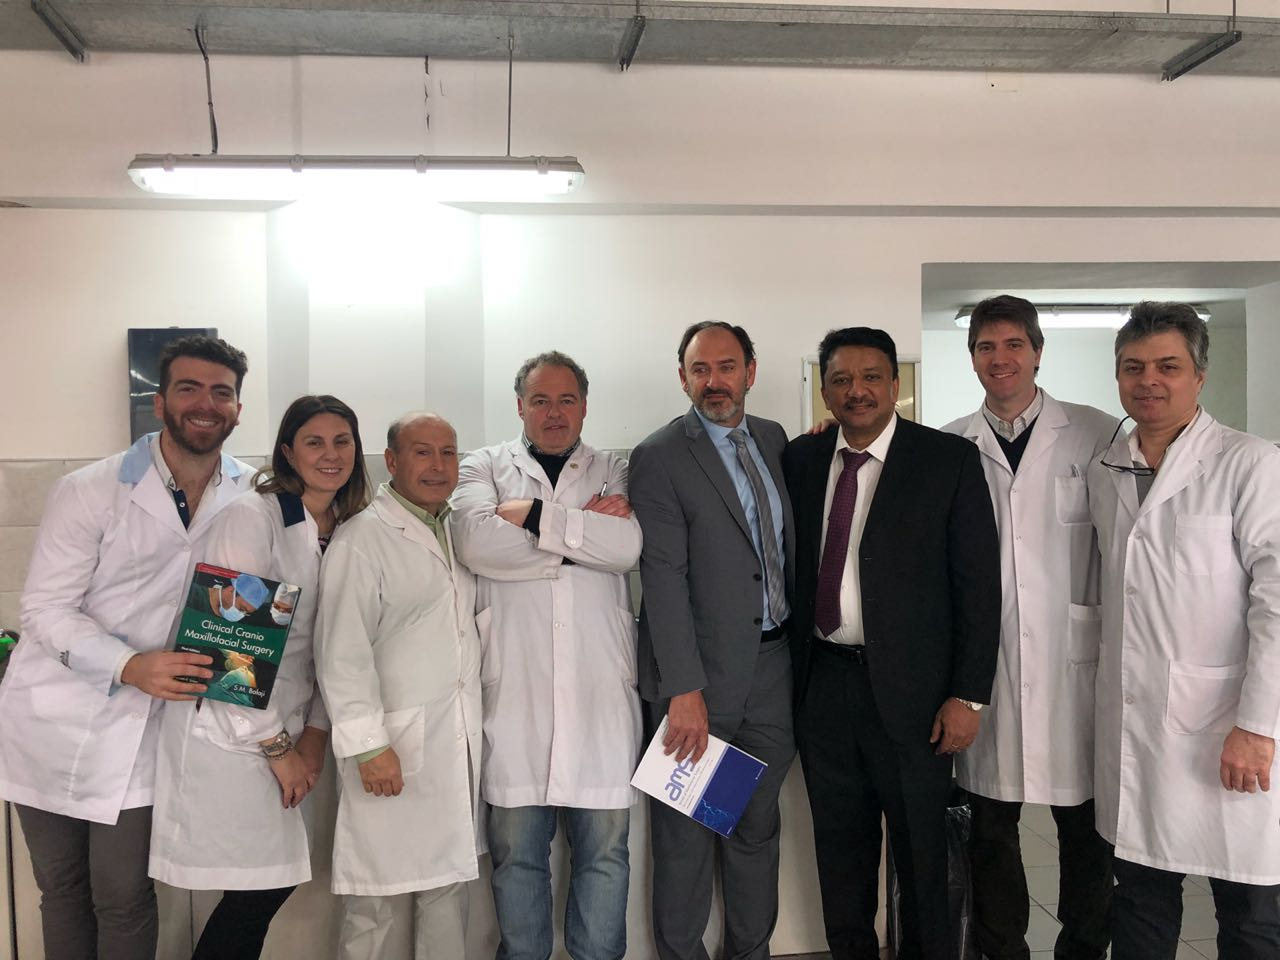 Dr Sm Balaji With The Staff And Residents Of The Department After Presenting The Clinical Craniomaxillofacial Surgery Textbook And Ams Journal